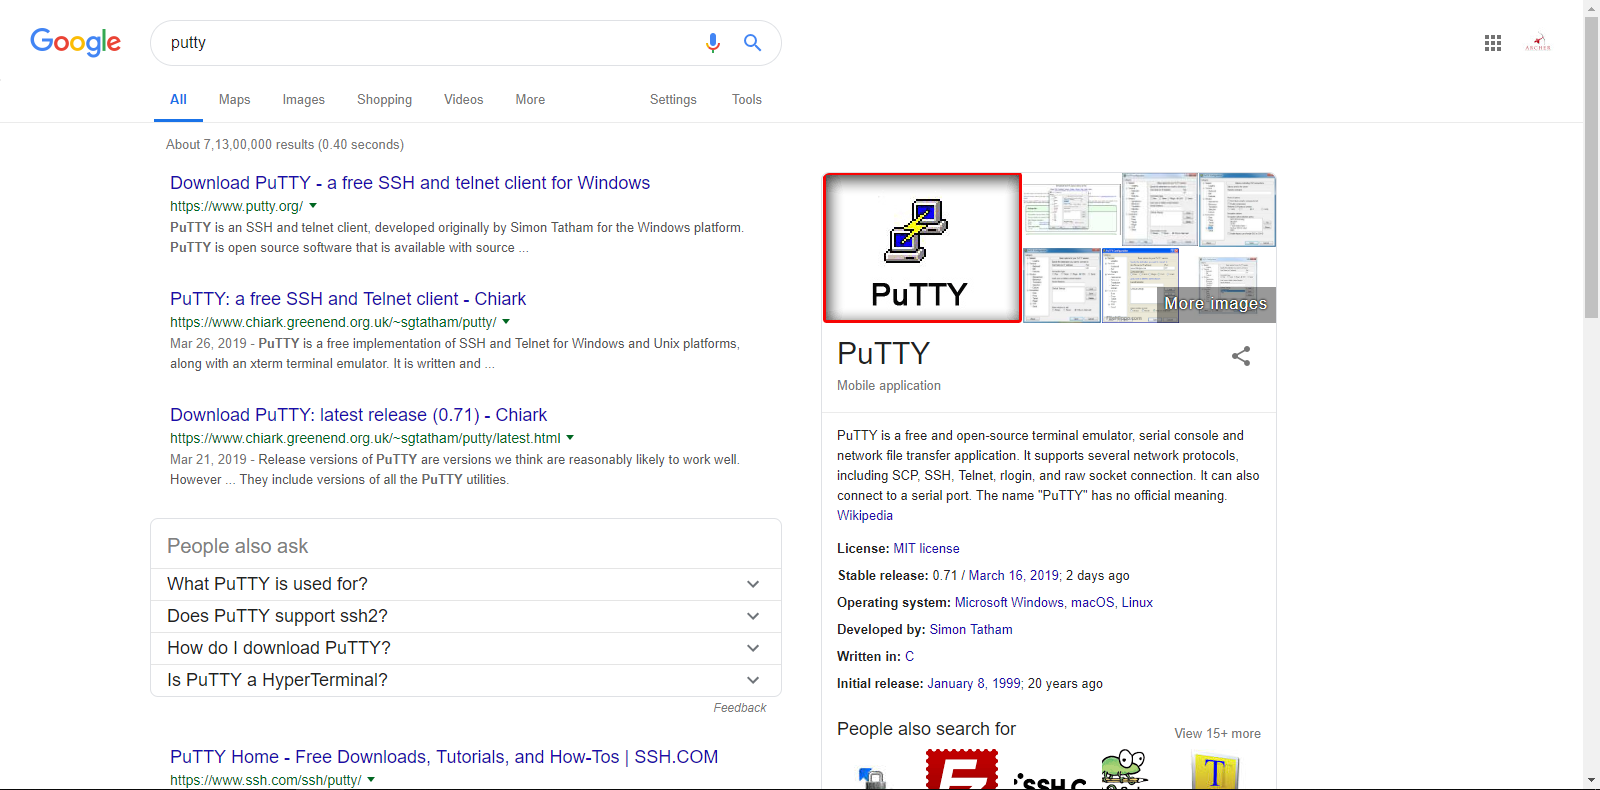 All about pfsense: How to Use Putty in Pfsense??